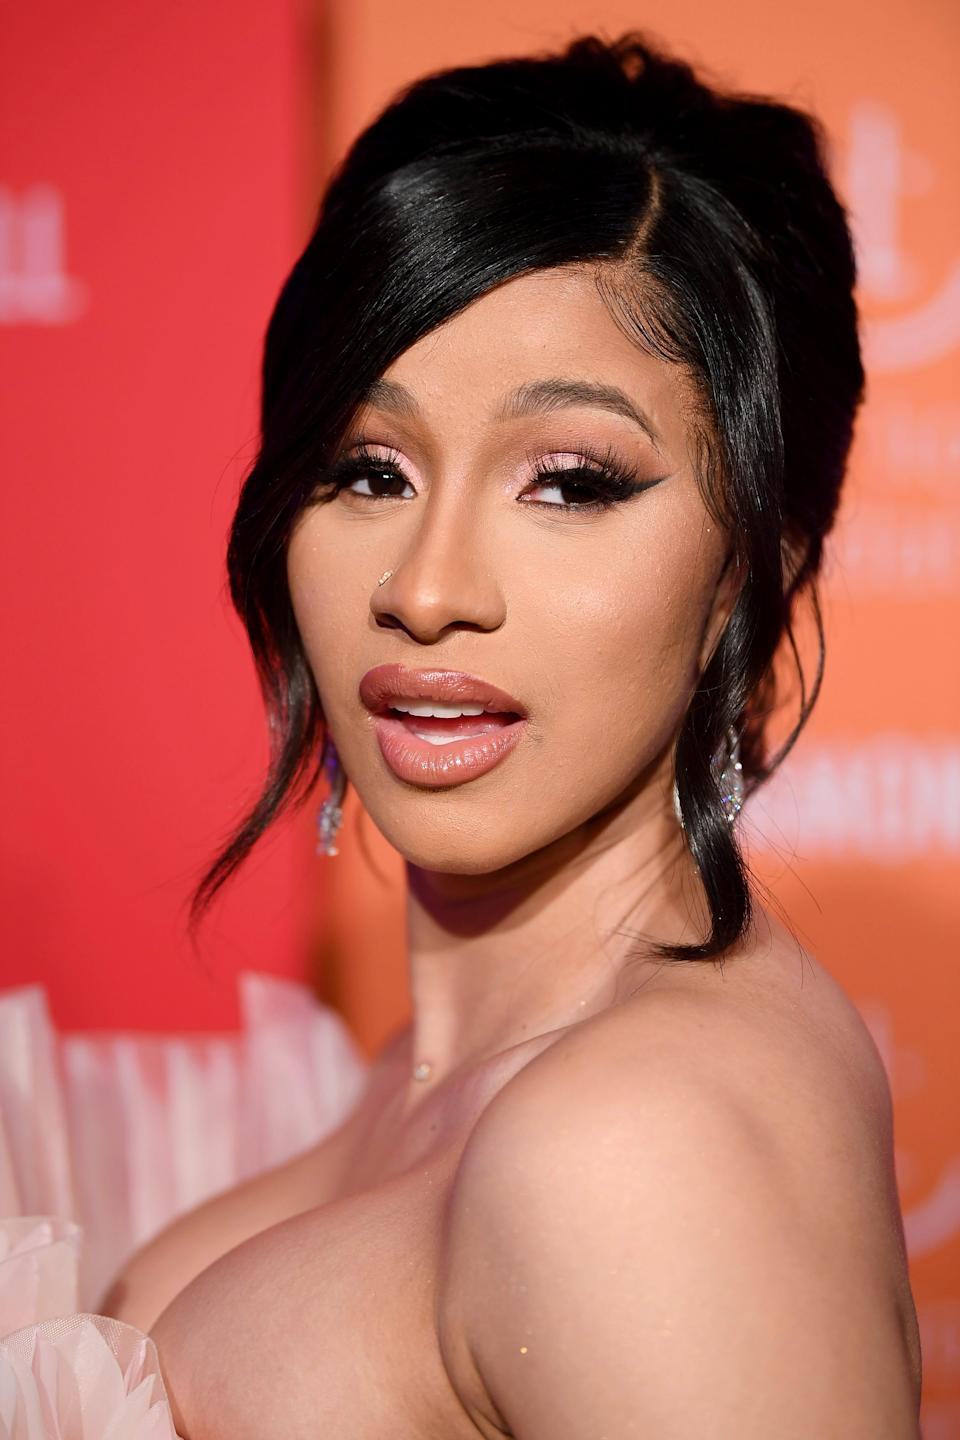 Cardi B made an appearance on Normani's steamy new song and video.